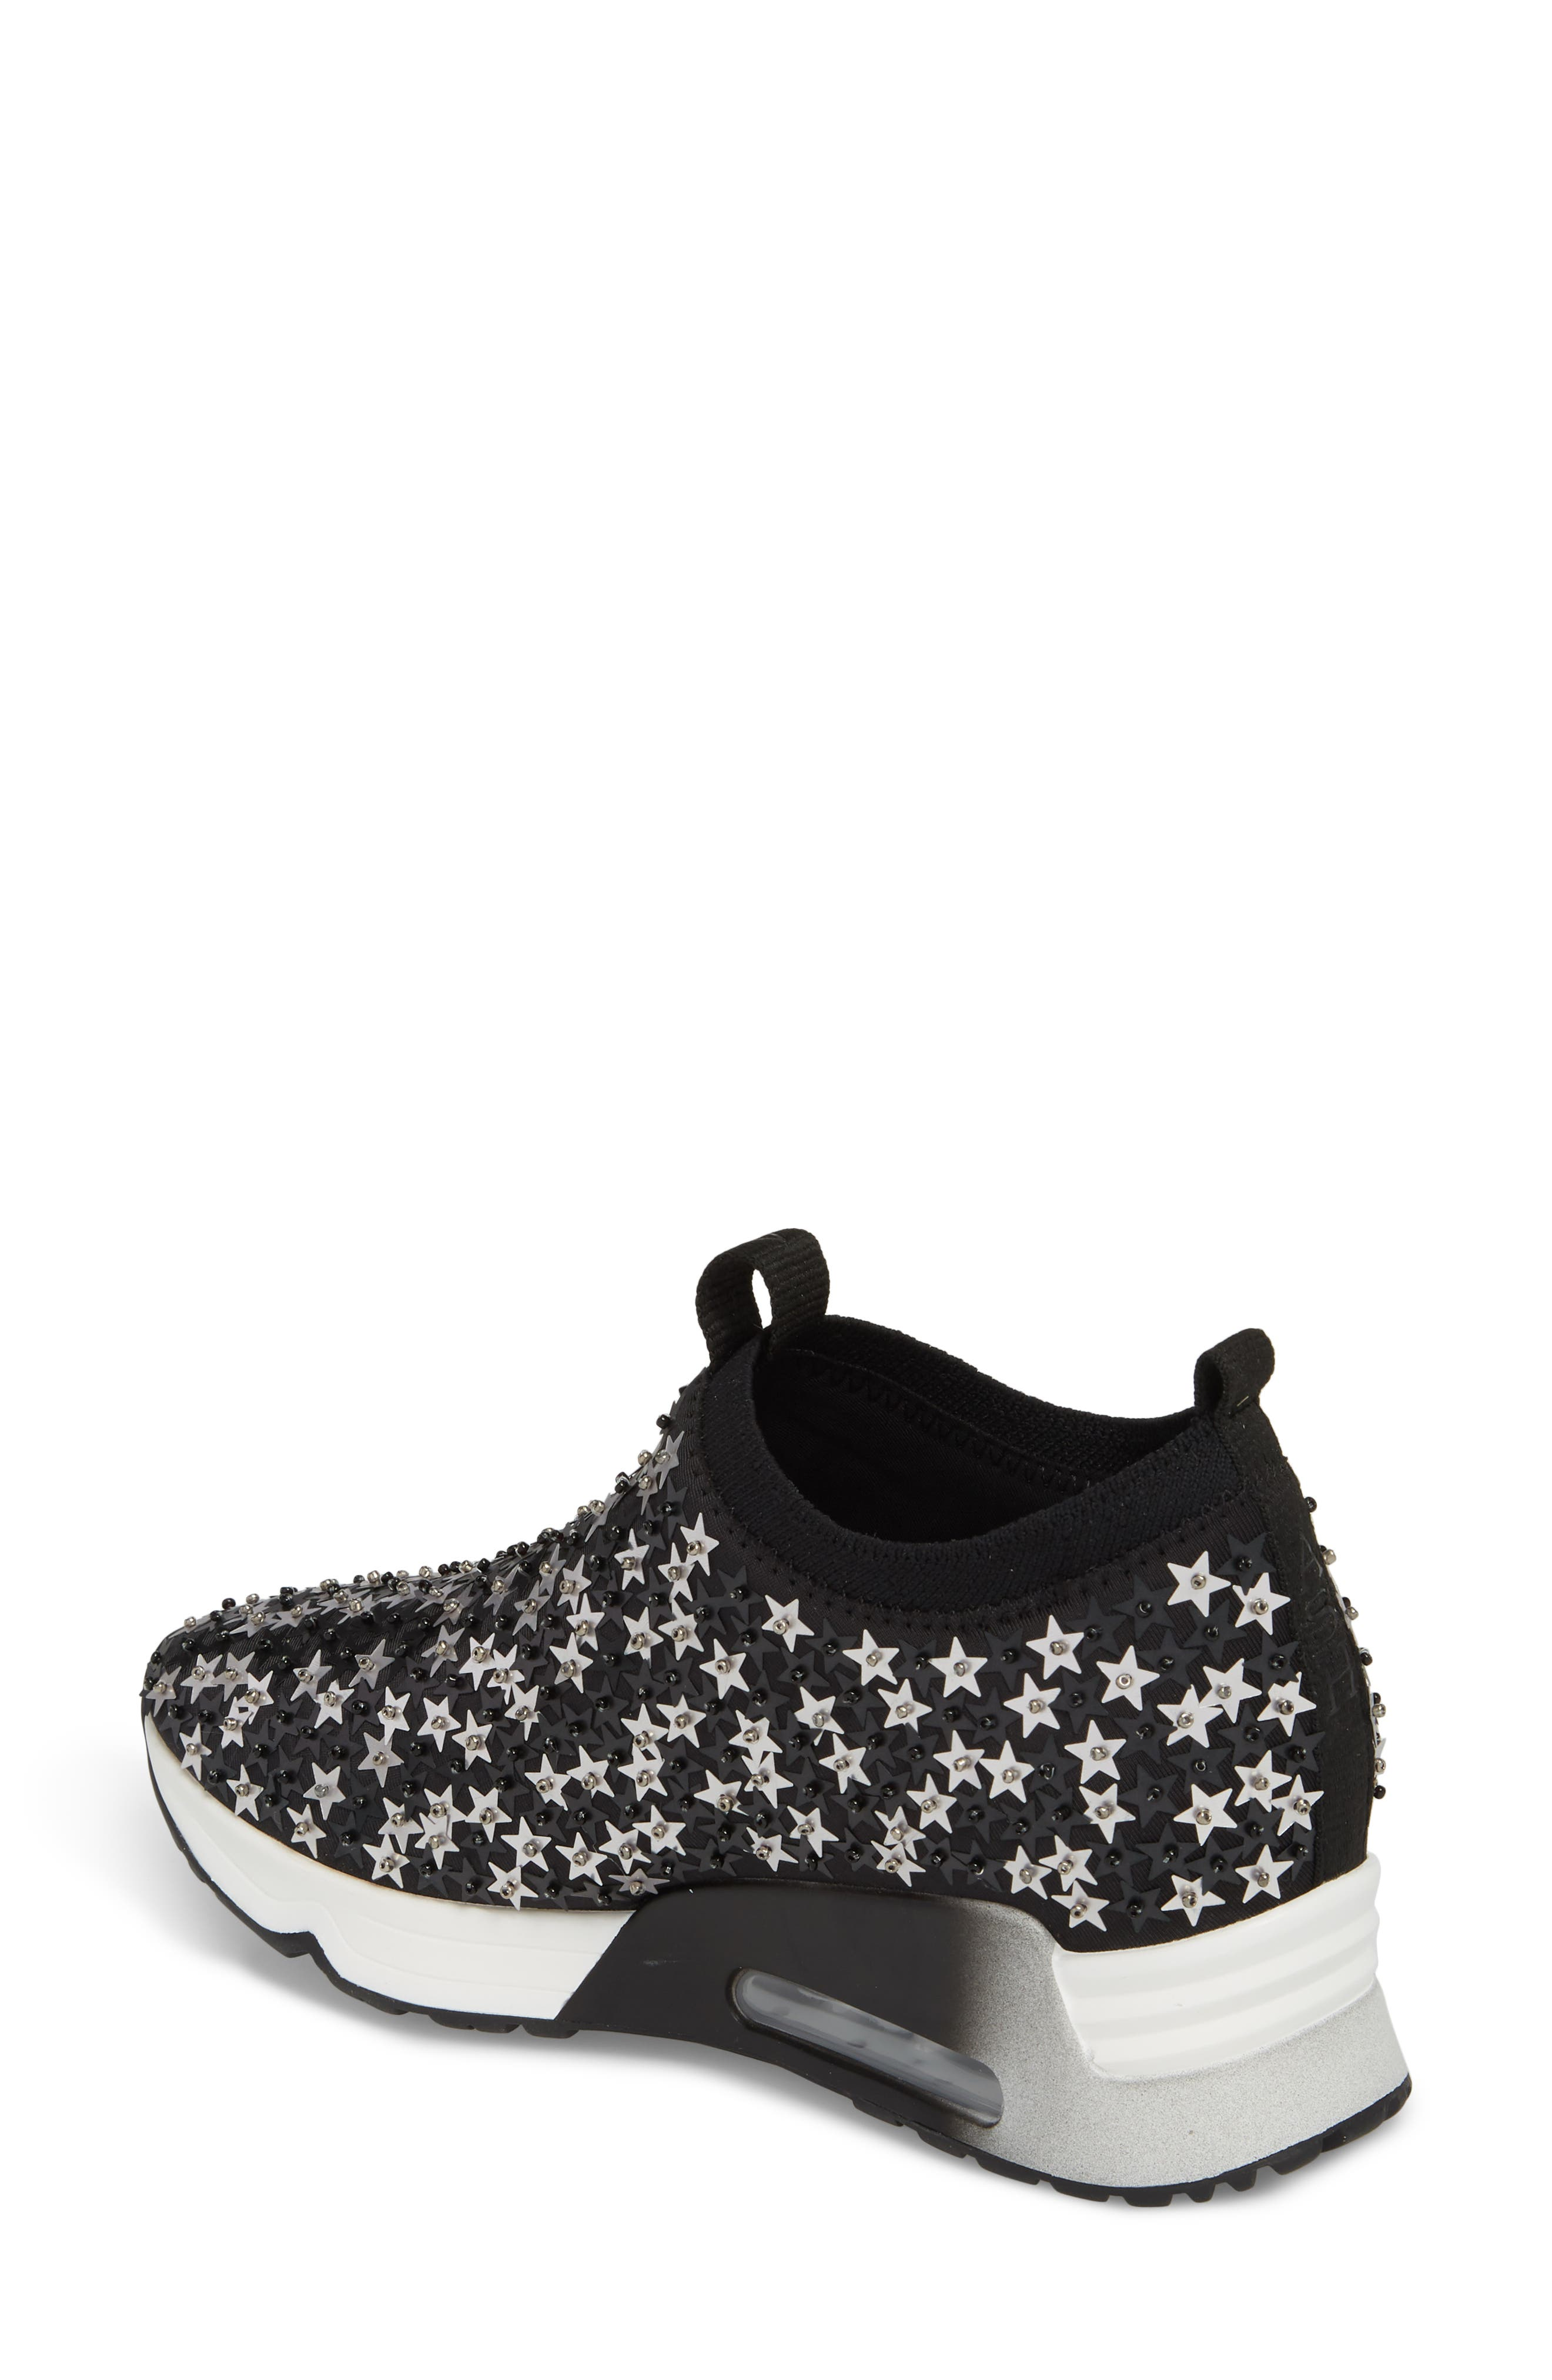 Lighting Star Platform Sock Sneaker,                             Alternate thumbnail 2, color,                             Black/ Silver